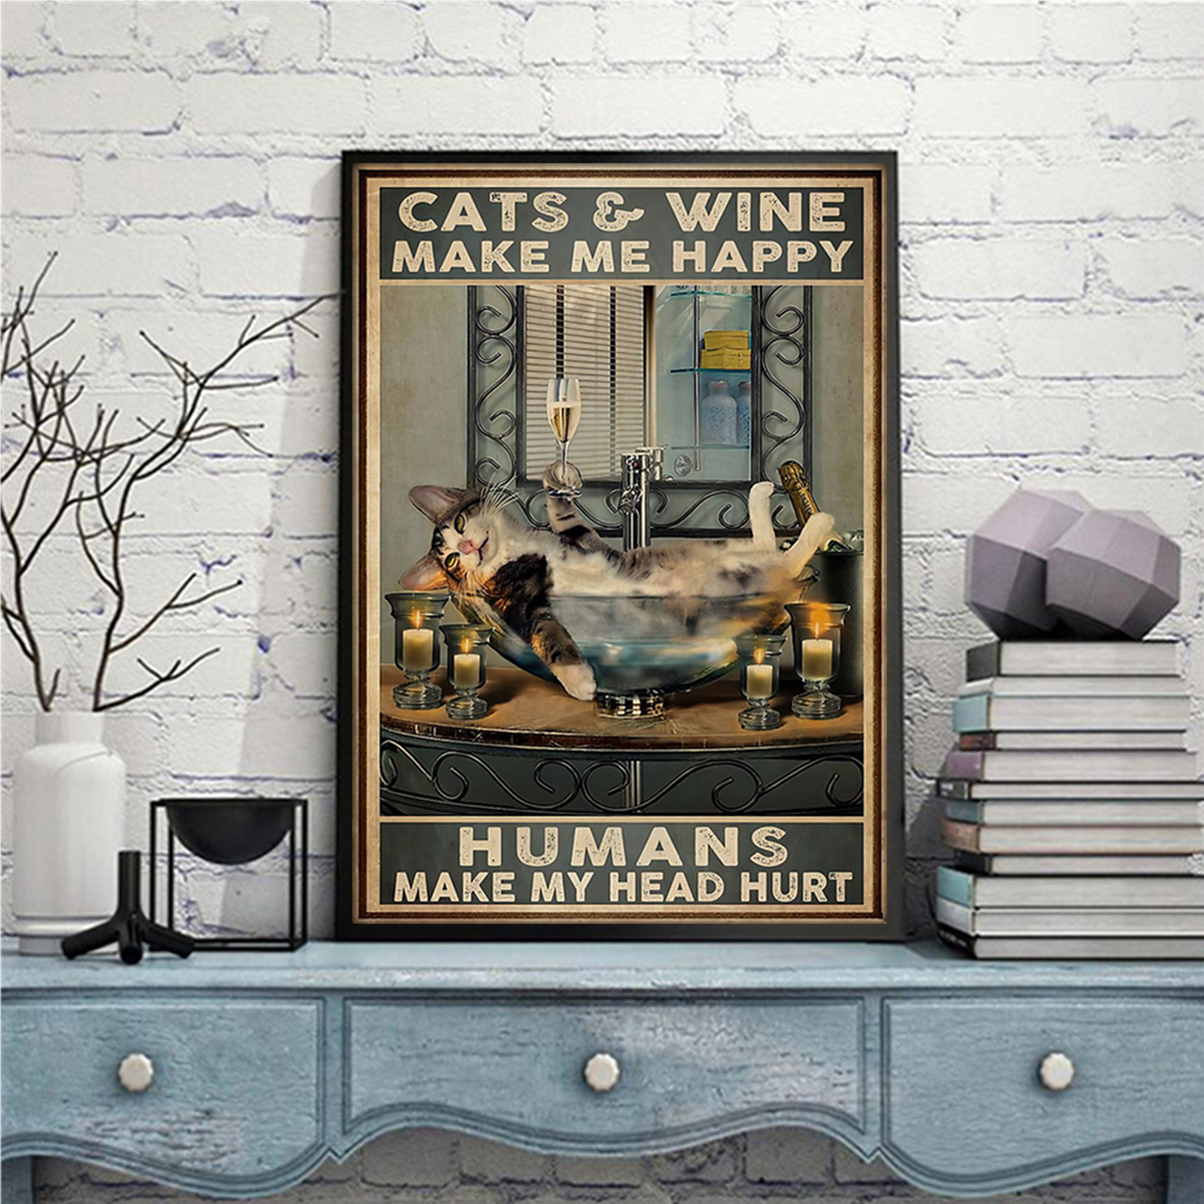 Cats and wine make me happy humans make my head hurt poster A1